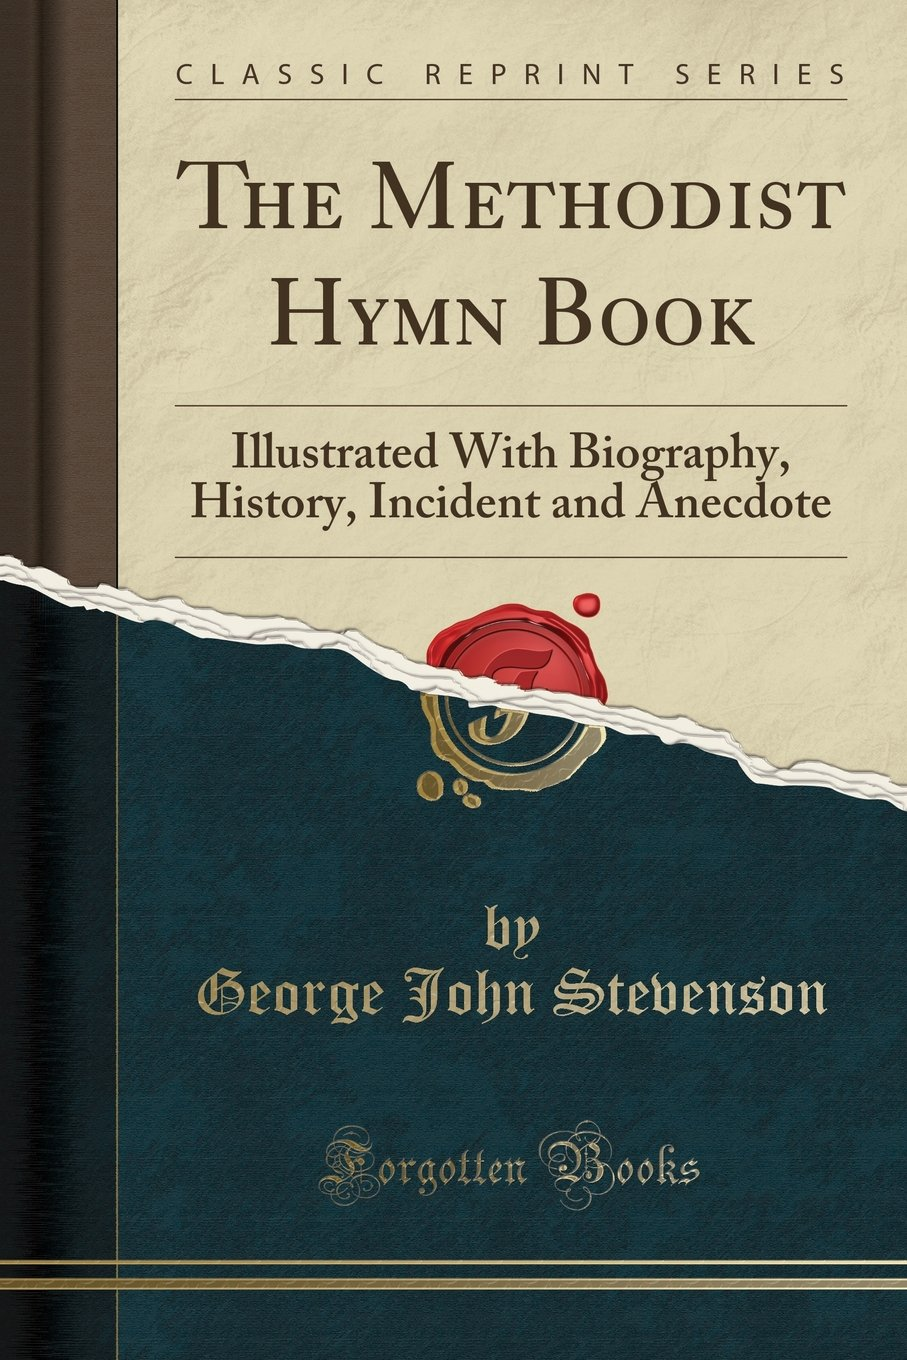 The Methodist Hymn Book: Illustrated With Biography, History, Incident and Anecdote (Classic Reprint)